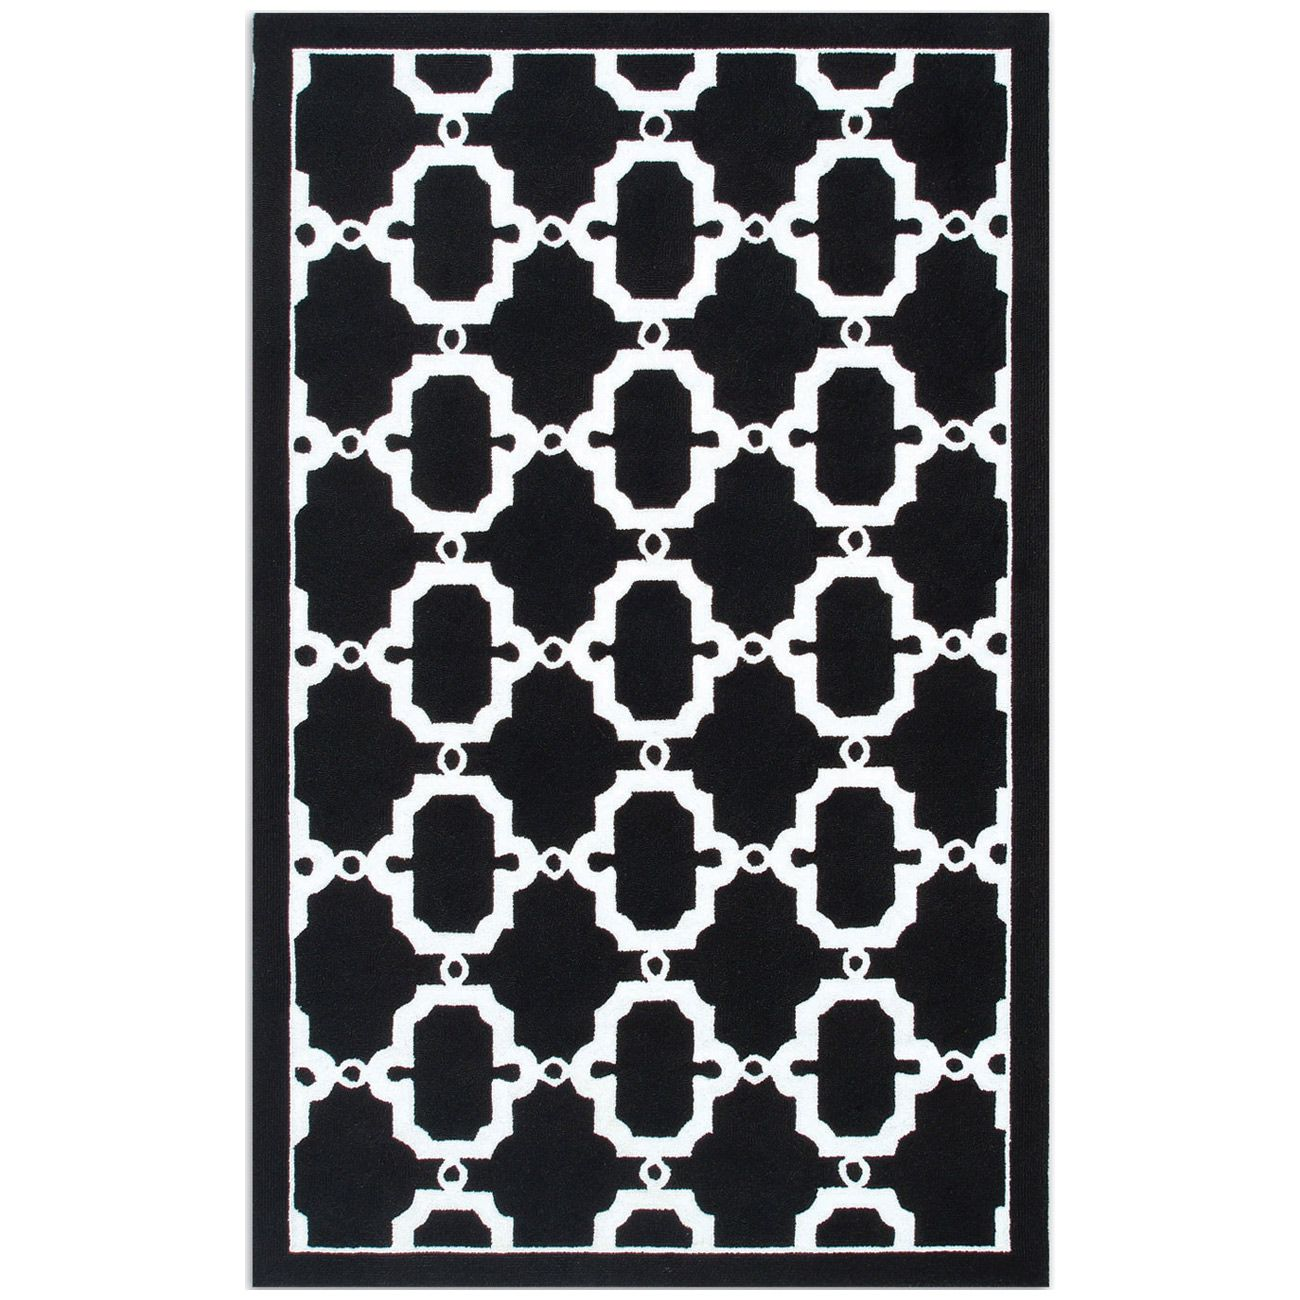 Resort Hyperion Black And White Rug Zinc Door Zincdoor Modern Blackandwhite Decor Design Rugs Geometric Black White Rug Rugs White Rug